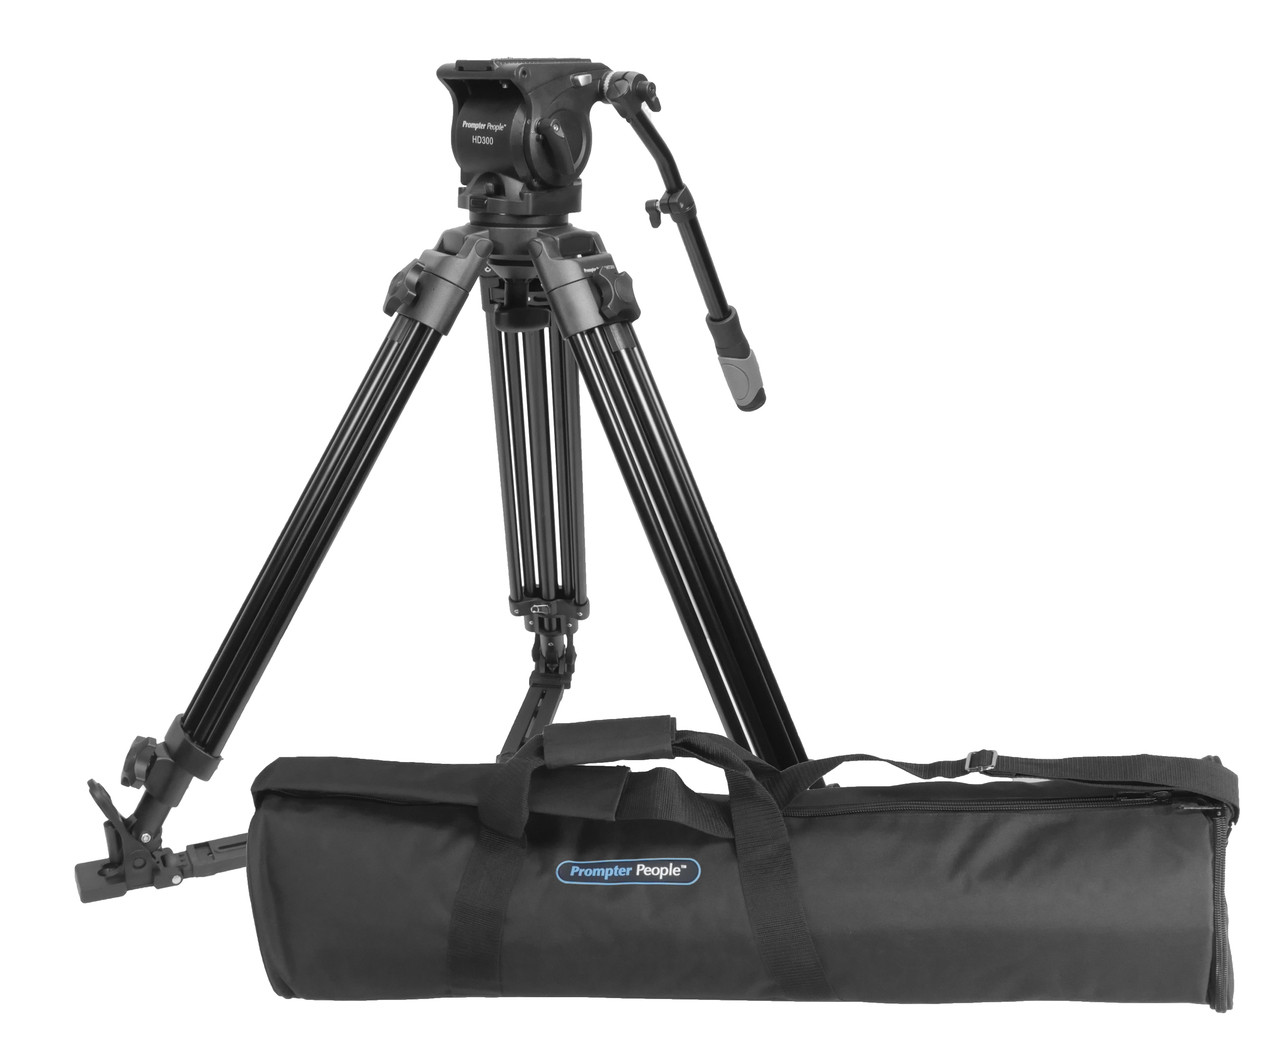 PrompterPeople Heavy Duty Tripod with Bag